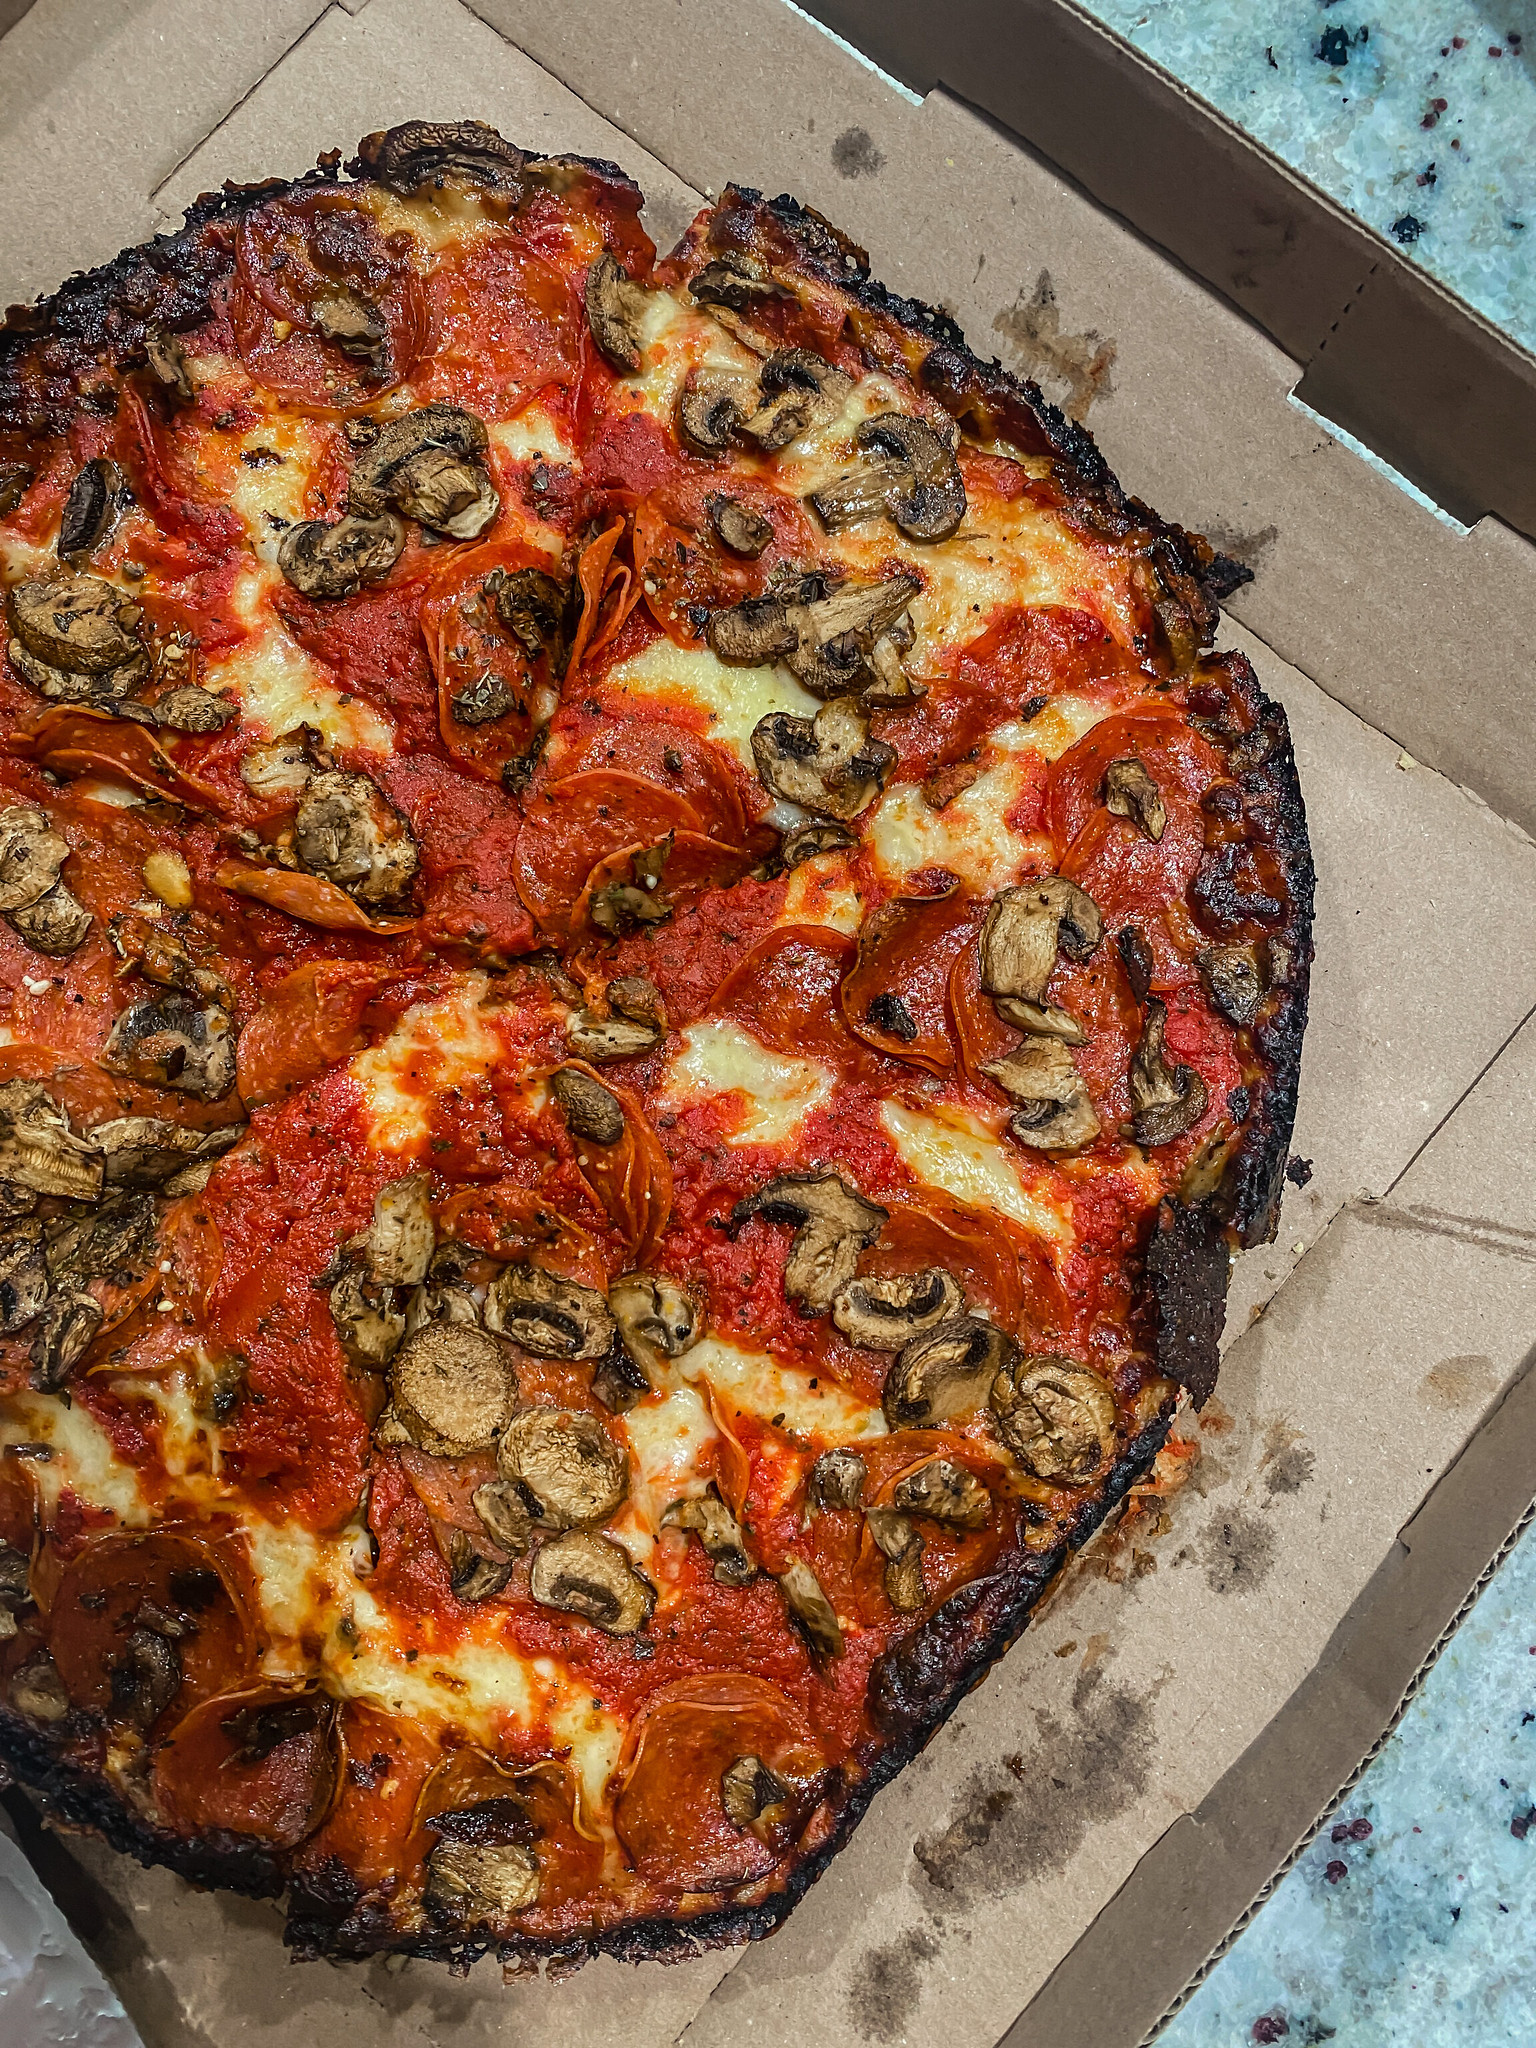 First Time In Chicago: The Perfect 3 Day Itinerary | Chicago Travel Guide | 72 Hours in Chicago | 3 Days in Chicago Itinerary | What to do in Chicago | Where to Stay in Chicago | Ultimate Chicago Bucket List | Top Things to Do in Chicago | First Timer's Guide to Chicago | Chicago Deep Dish Pizza